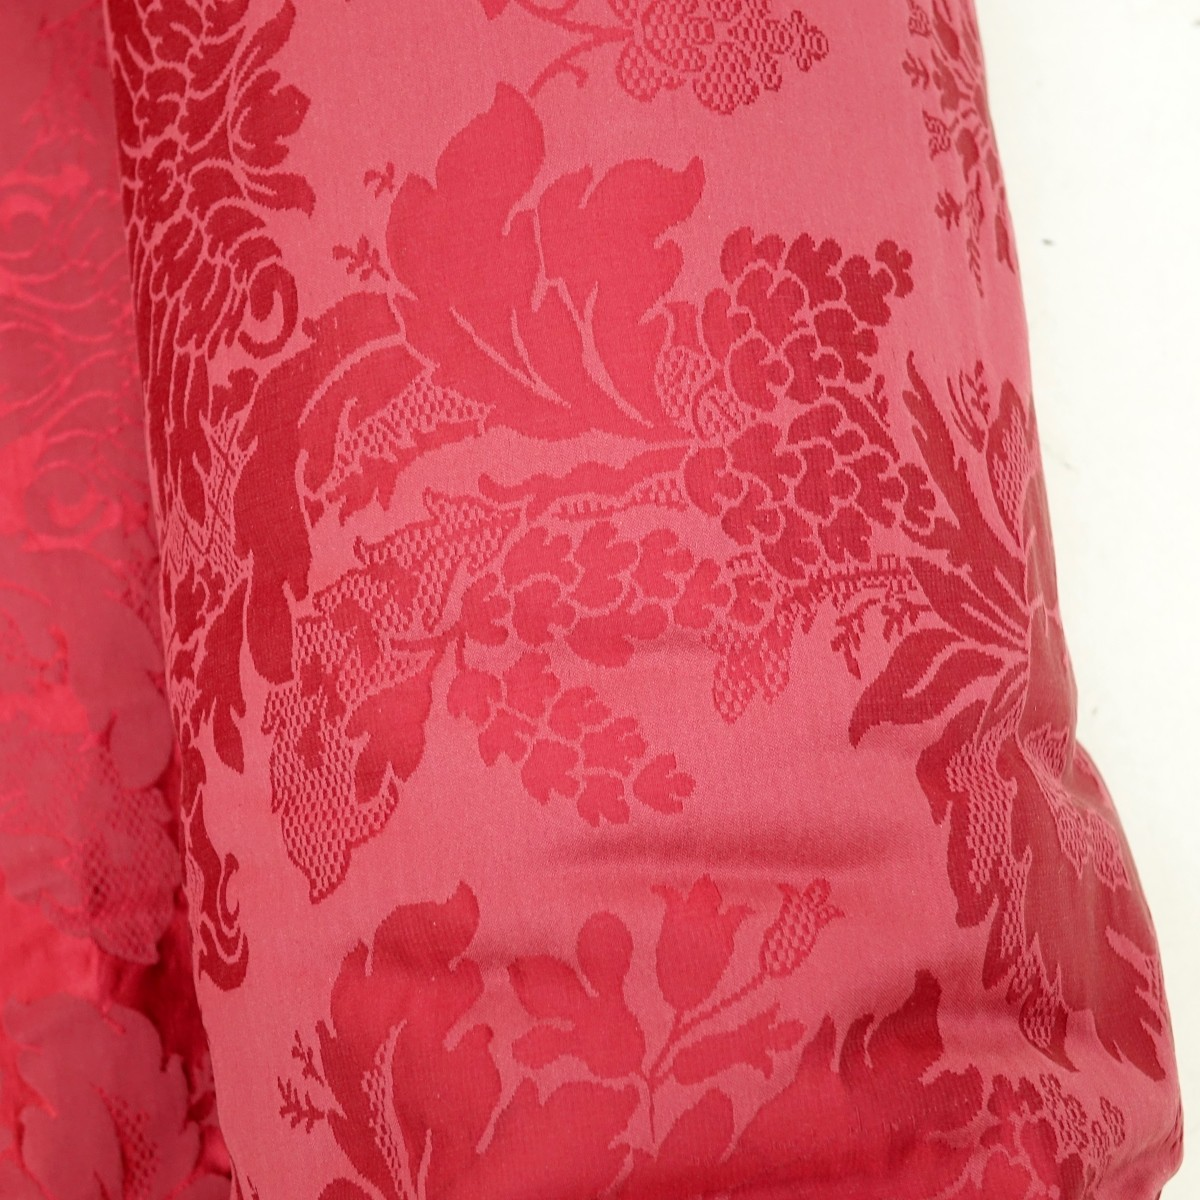 Lg Roll of Silk Damask Scalamandre Fabric